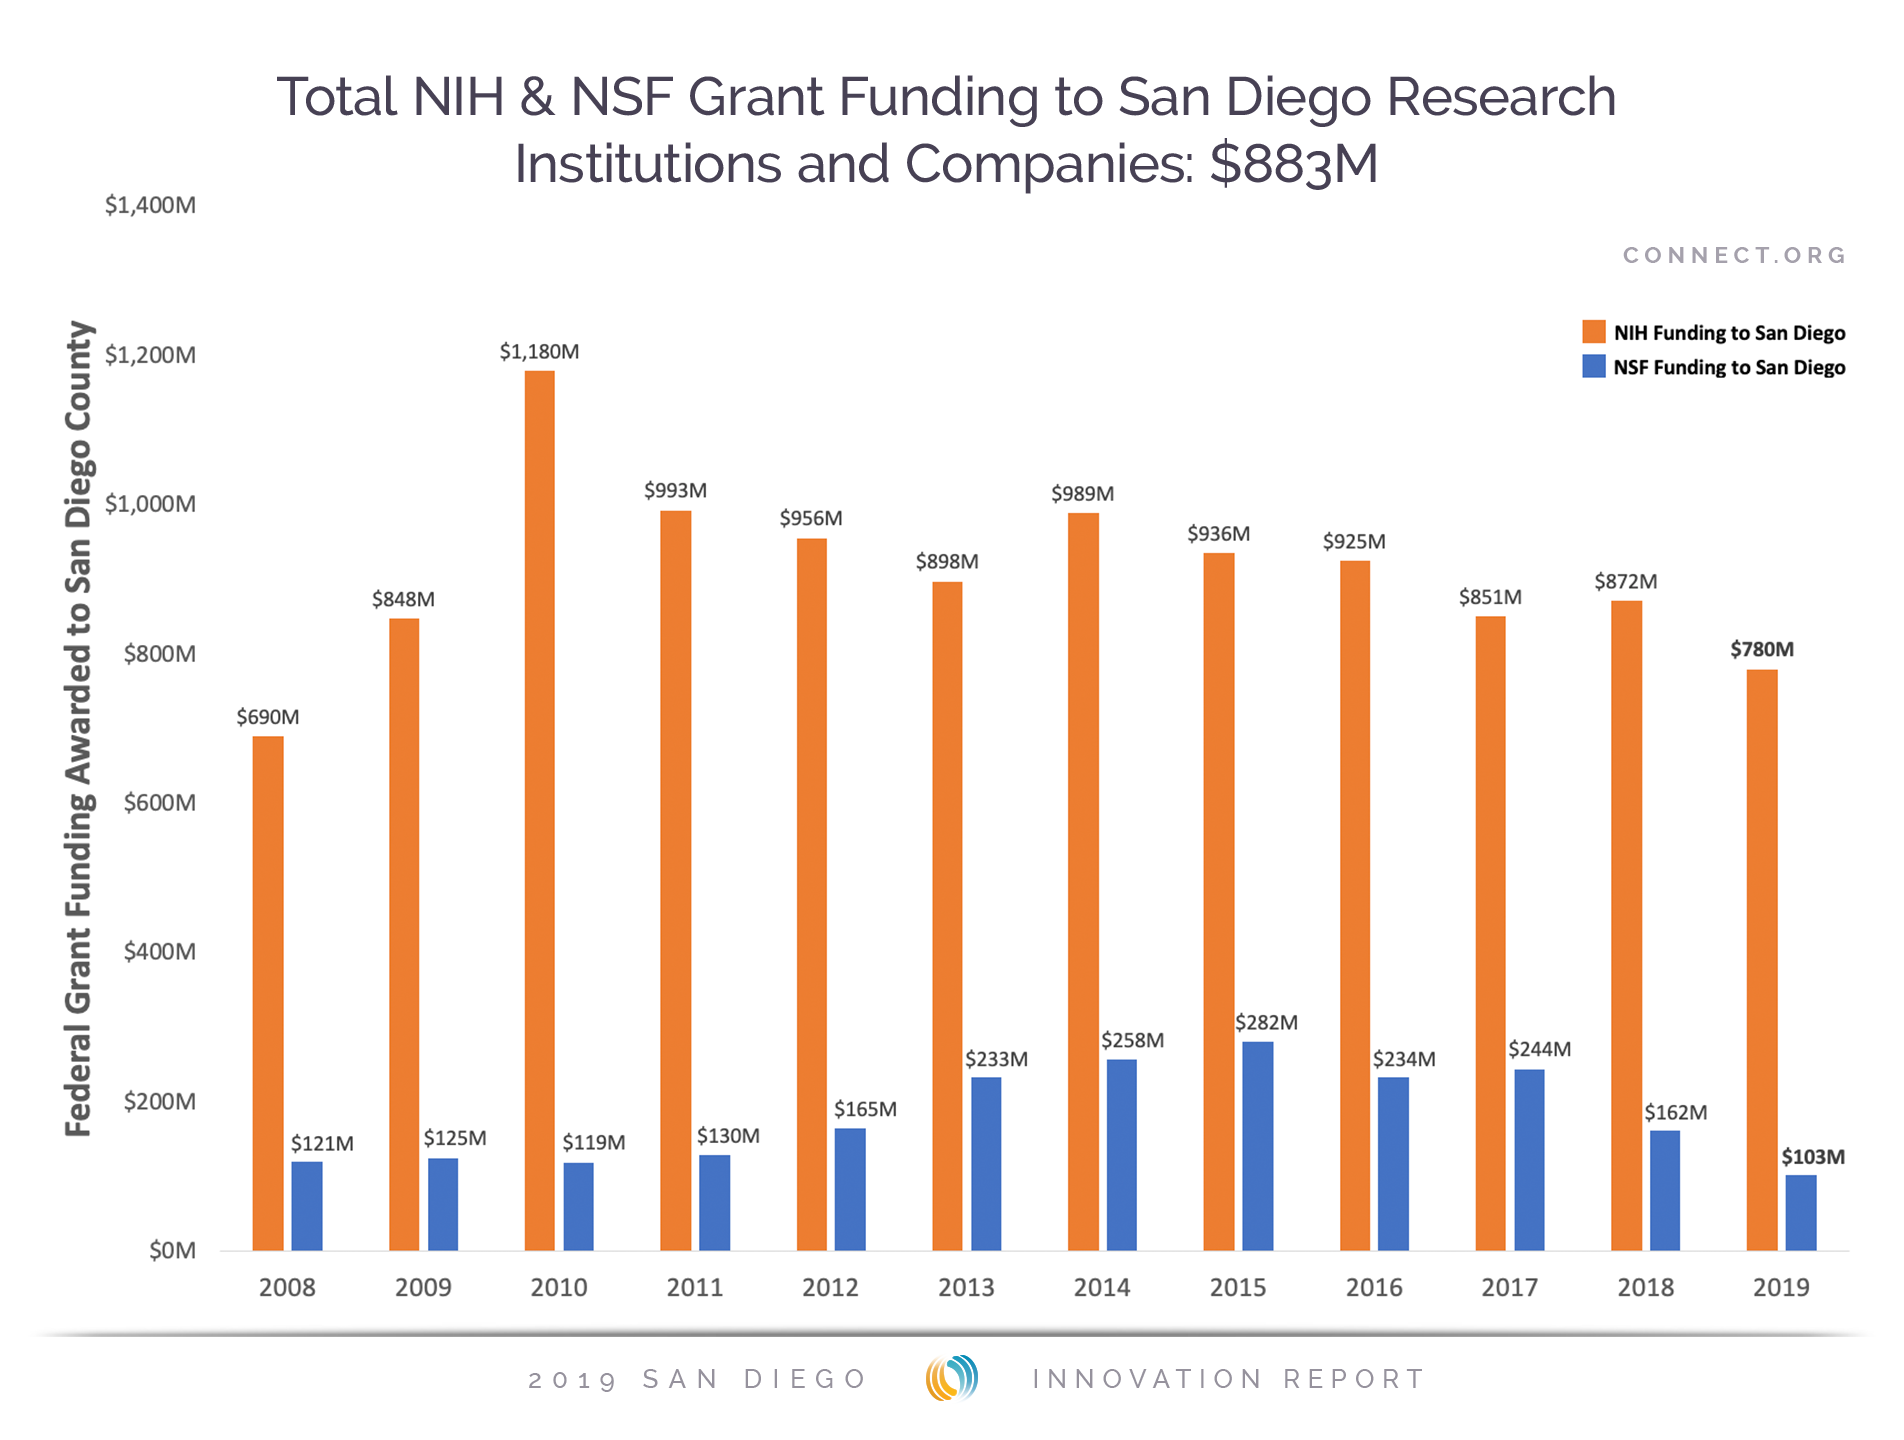 Total NIH and NSF Grant Funding to San Diego Research Institutions and Companies: $883M